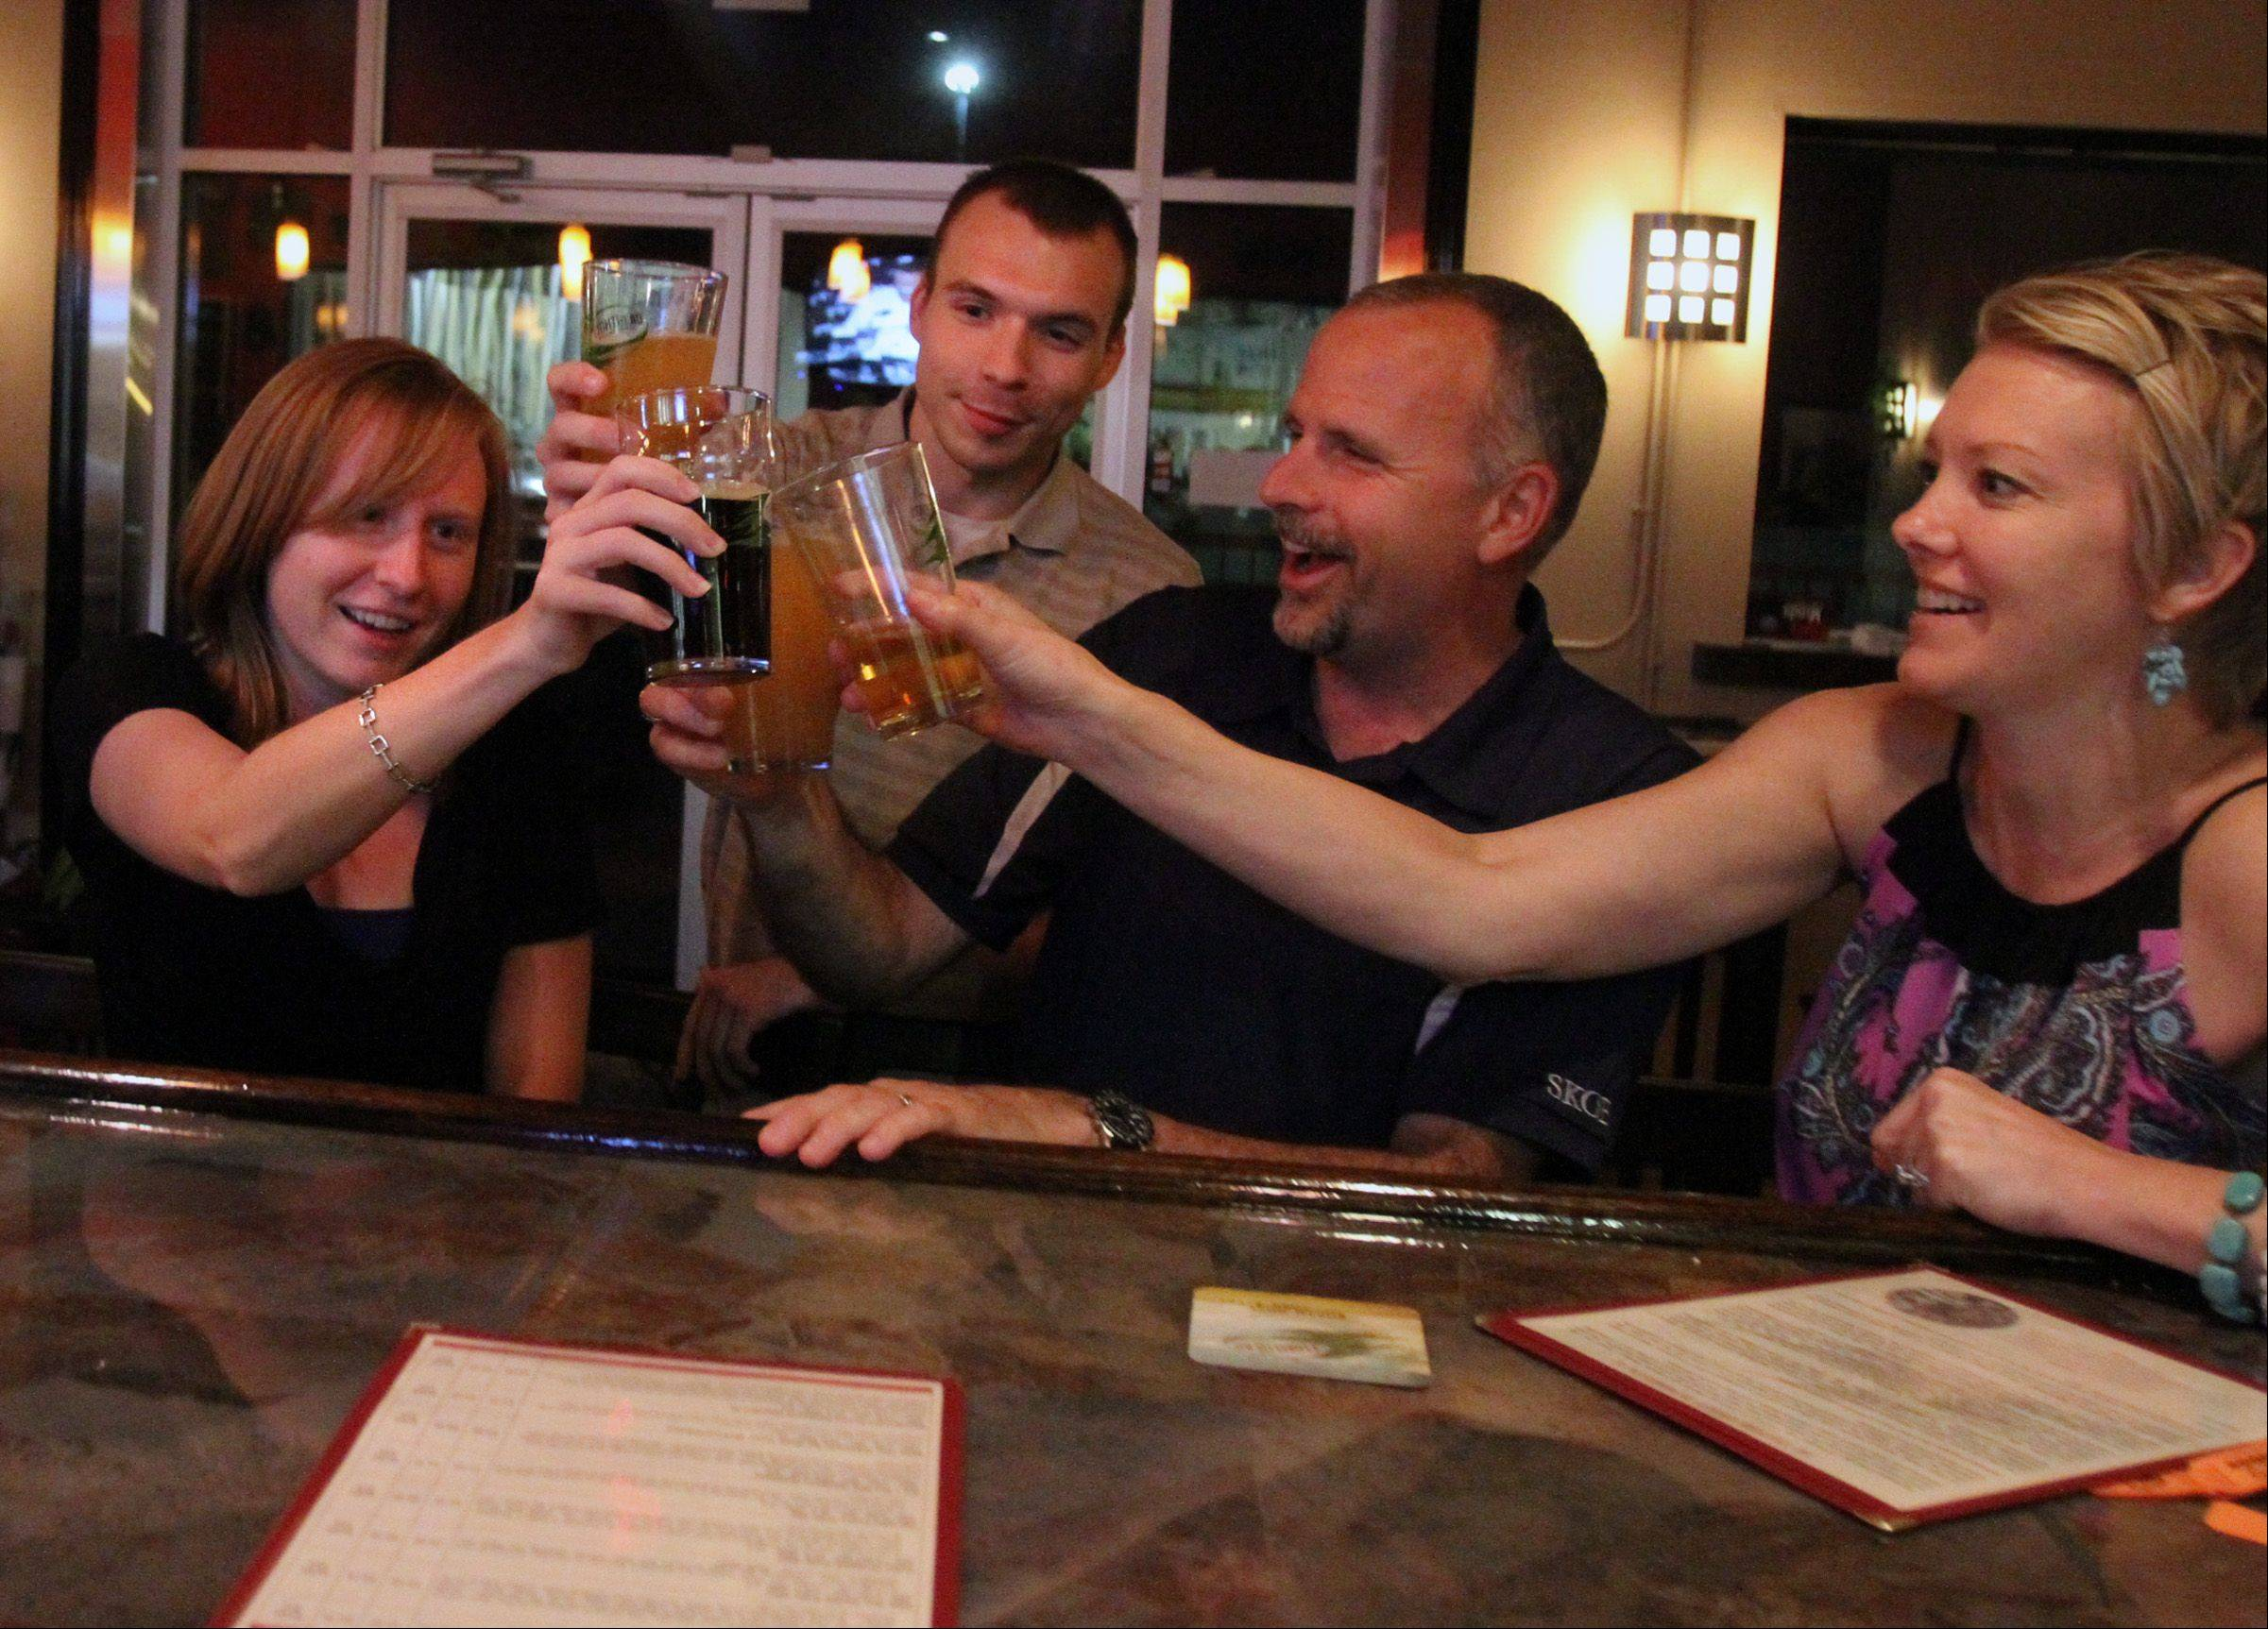 Erinn Vincent, left, of Wauconda celebrates her 26th birthday with friends at Tighthead Brewing Company in Mundelein.